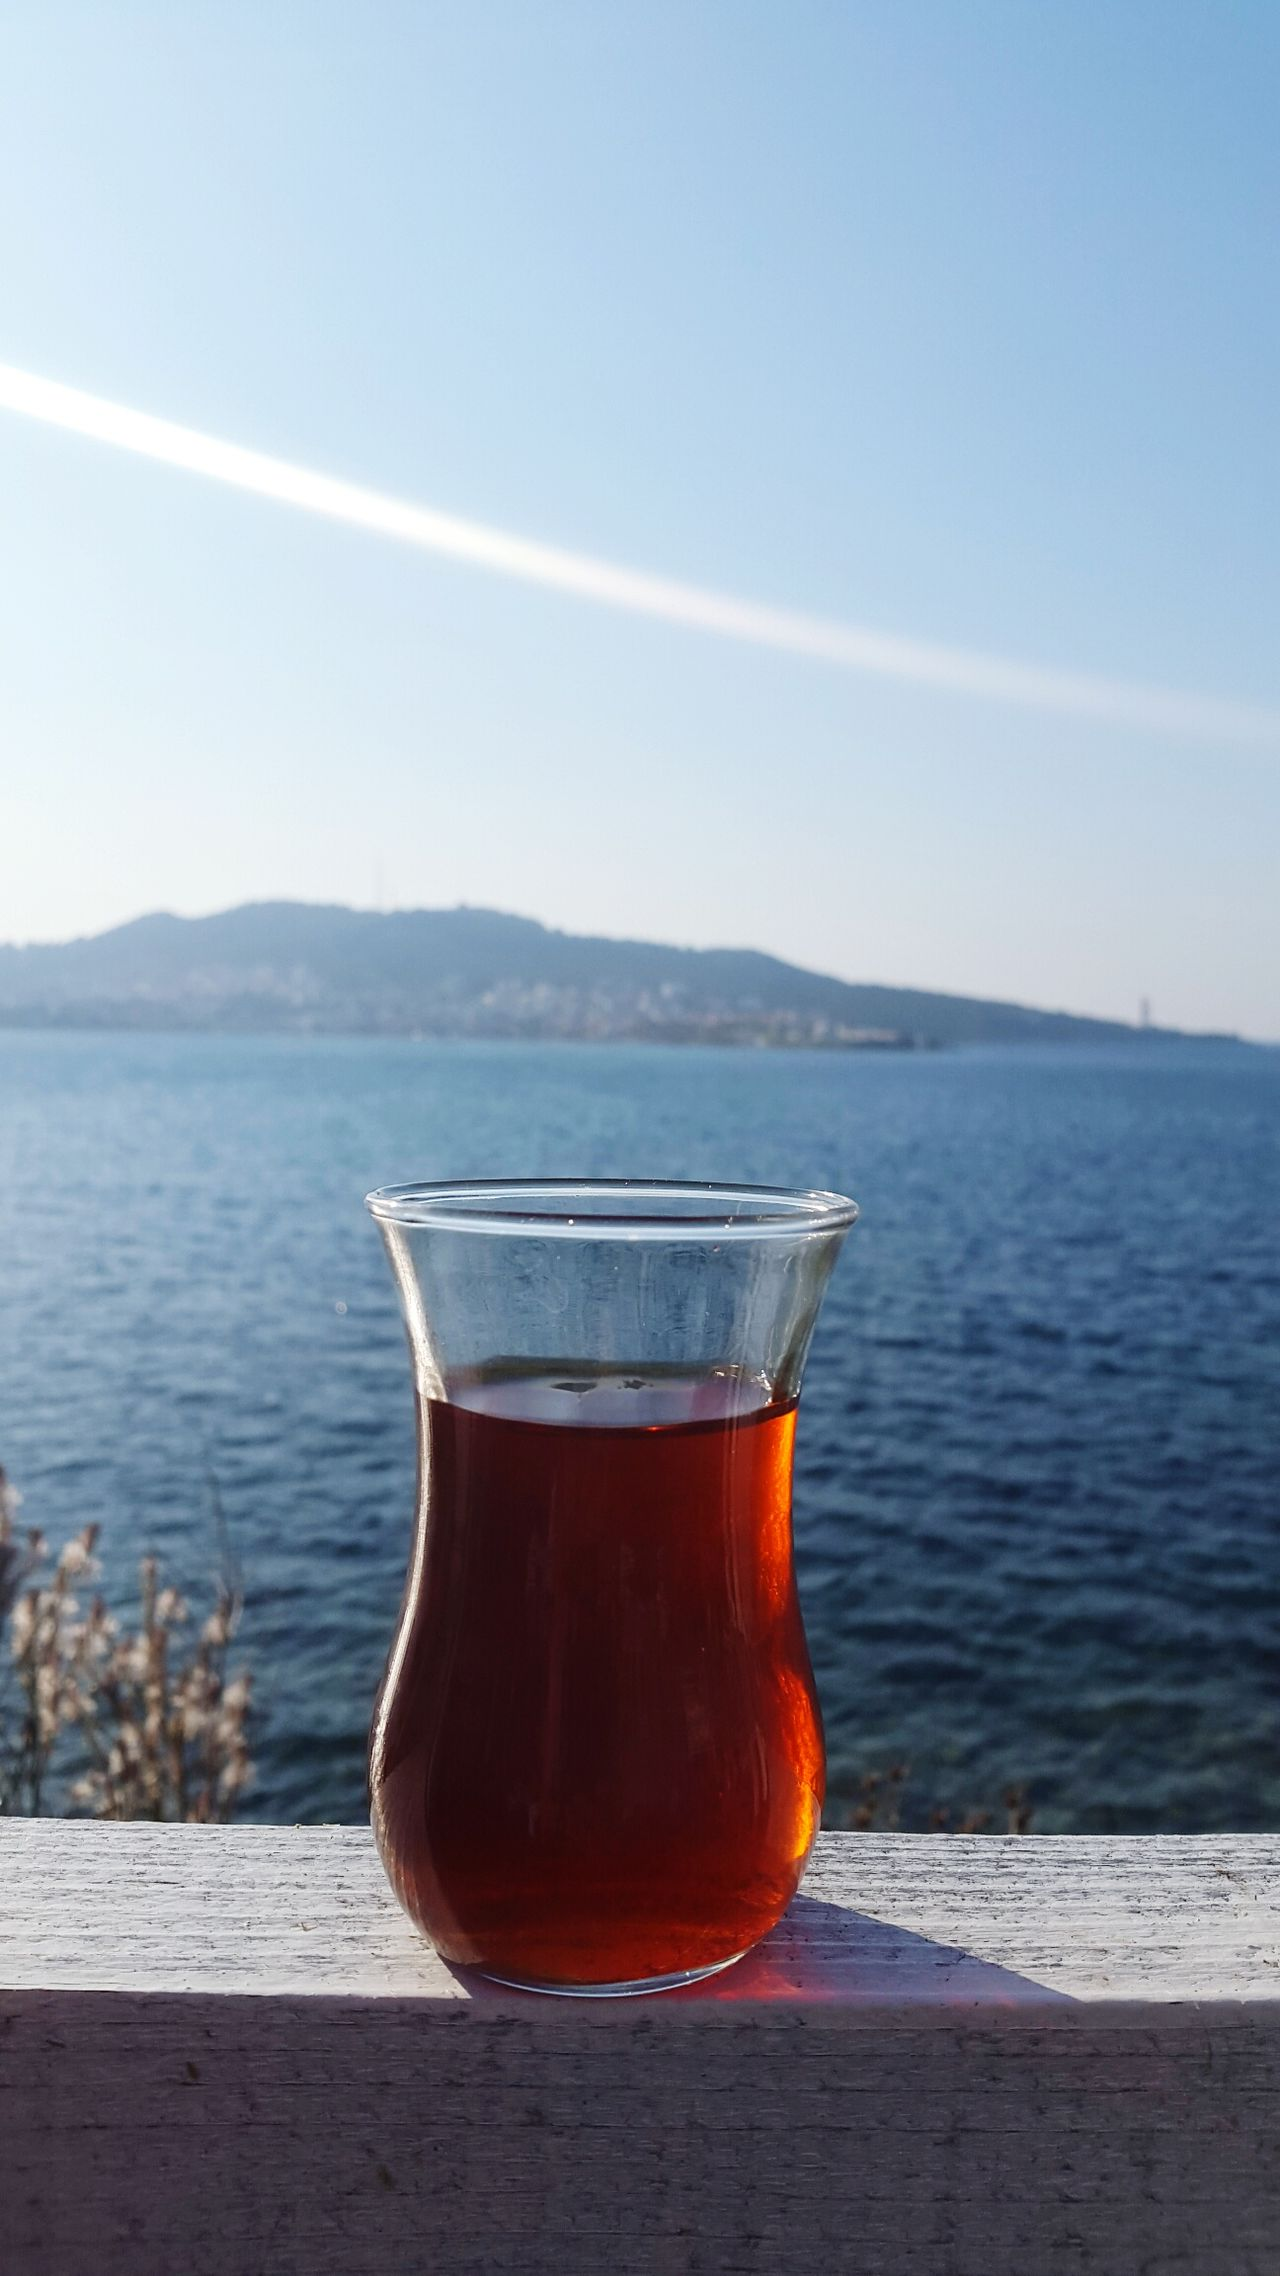 😍😍 Drink Refreshment Water Drinking Glass Food And Drink Healthy Eating Heat - Temperature No People Freshness Nature Sky Outdoors Day Tea Turkishcay çay Türkiye Turkey Nature EyeEm